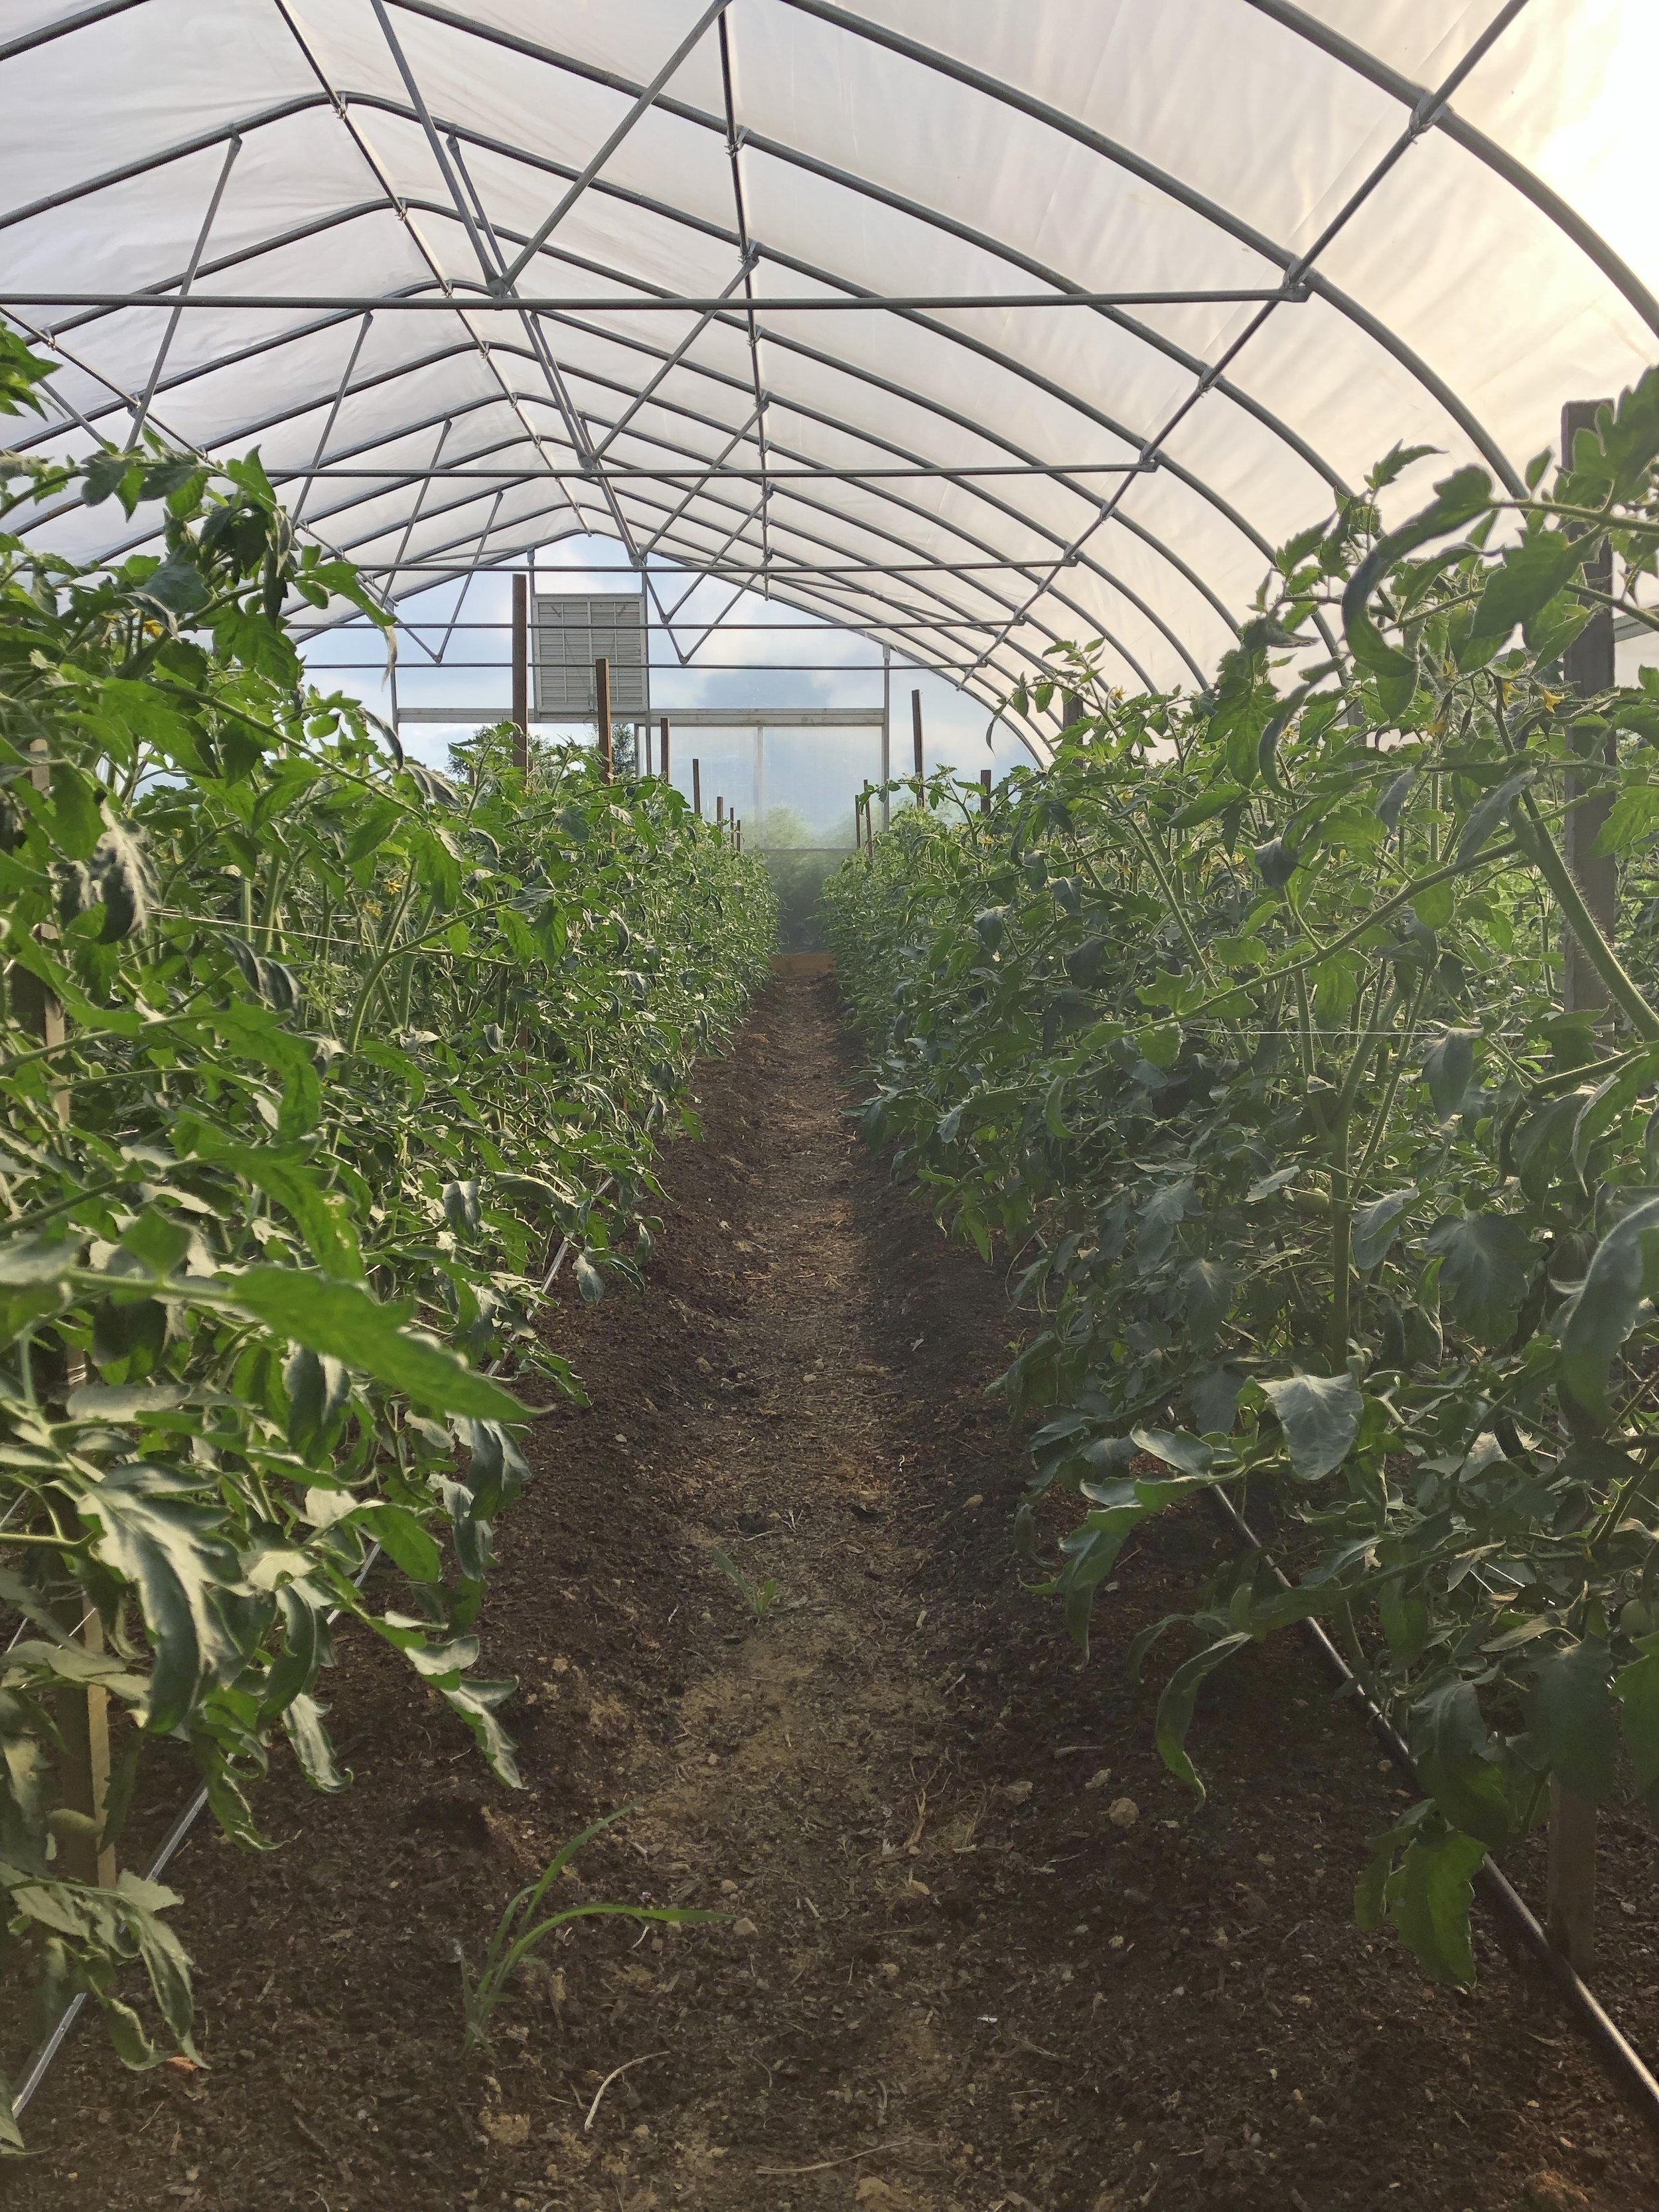 Tunnel tomatoes, stake and weave, and filling out. Should be ready by late September.